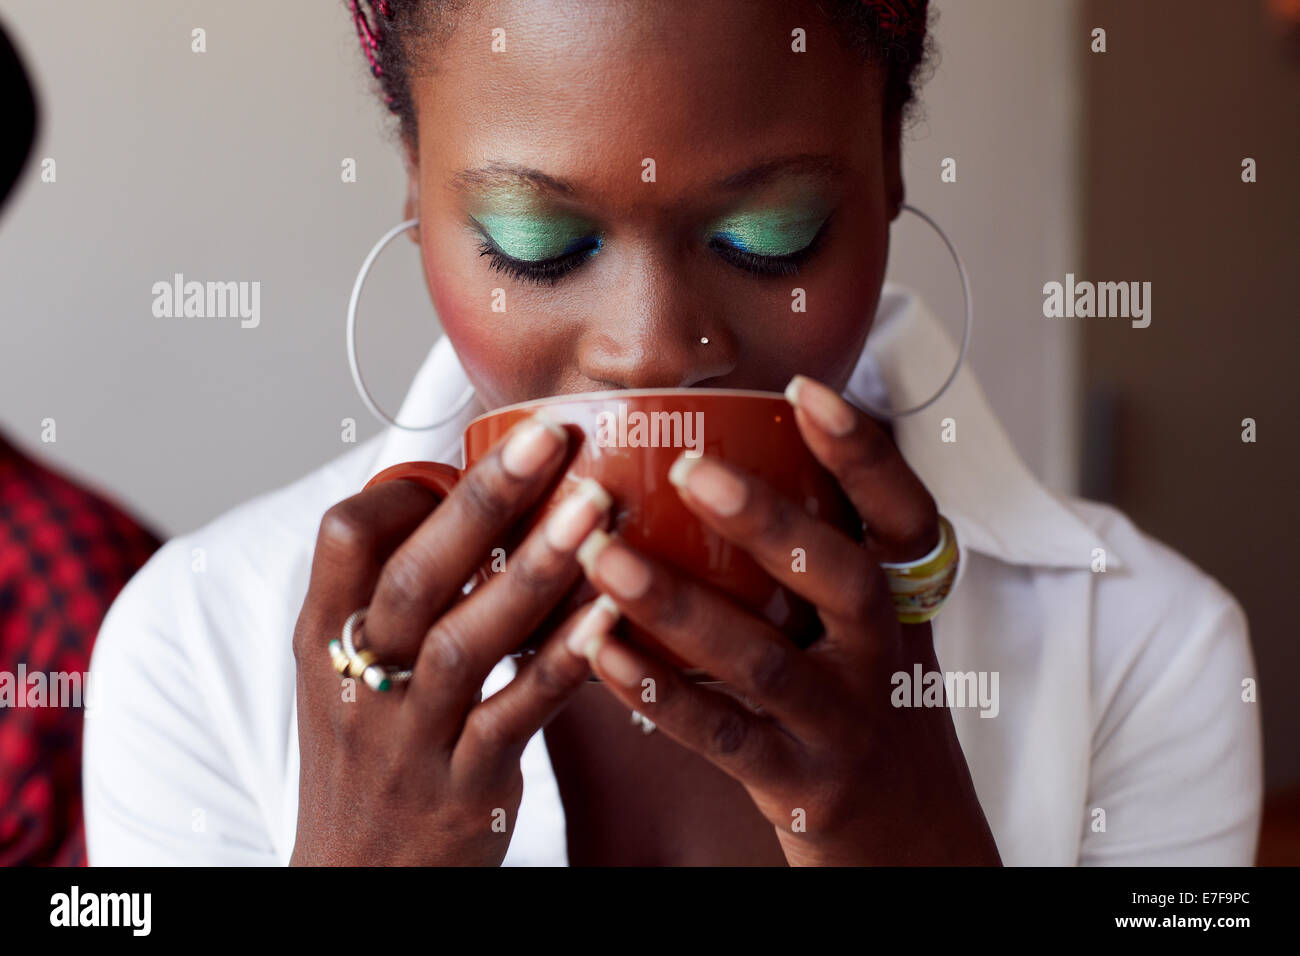 Woman drinking cup of coffee in cafe Stock Photo